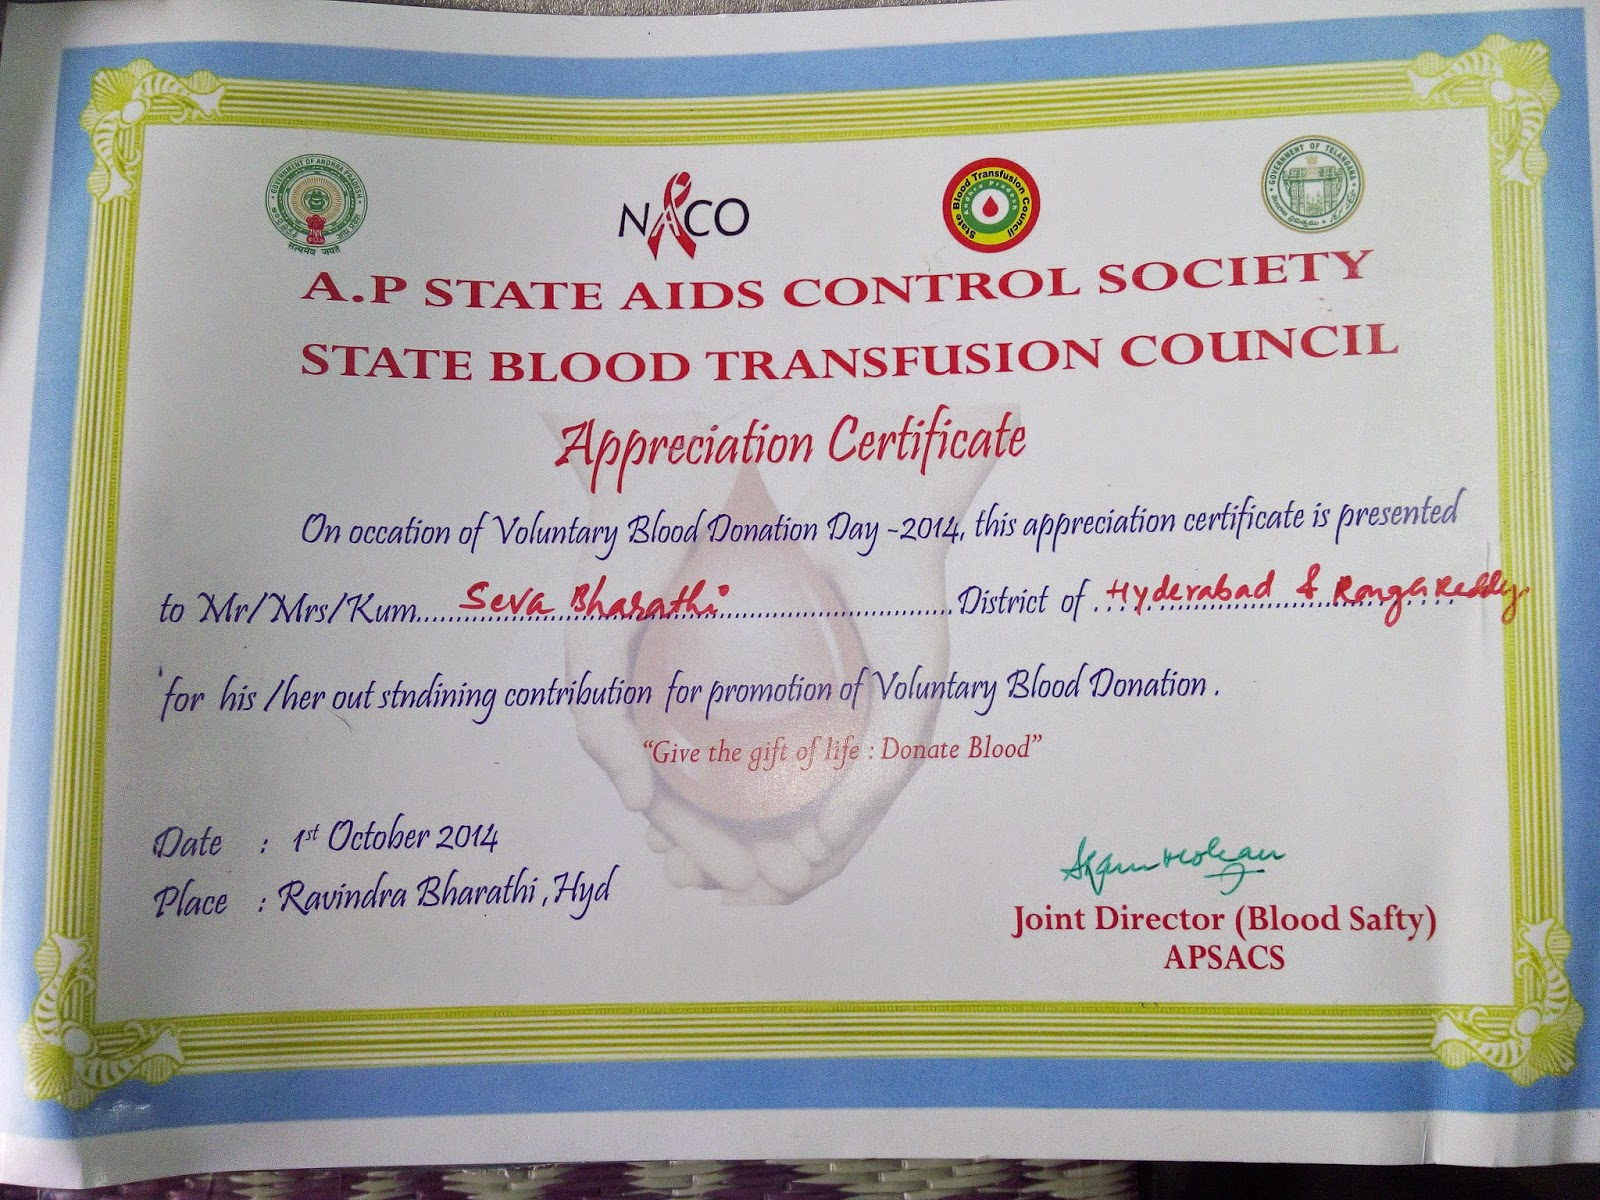 Sevabharathi appreciationcertificate and momento from joint seva bharathi received appreciation certificate and moment from joint director apsacs andhra pradesh state aids control society state blood transfusion yelopaper Choice Image